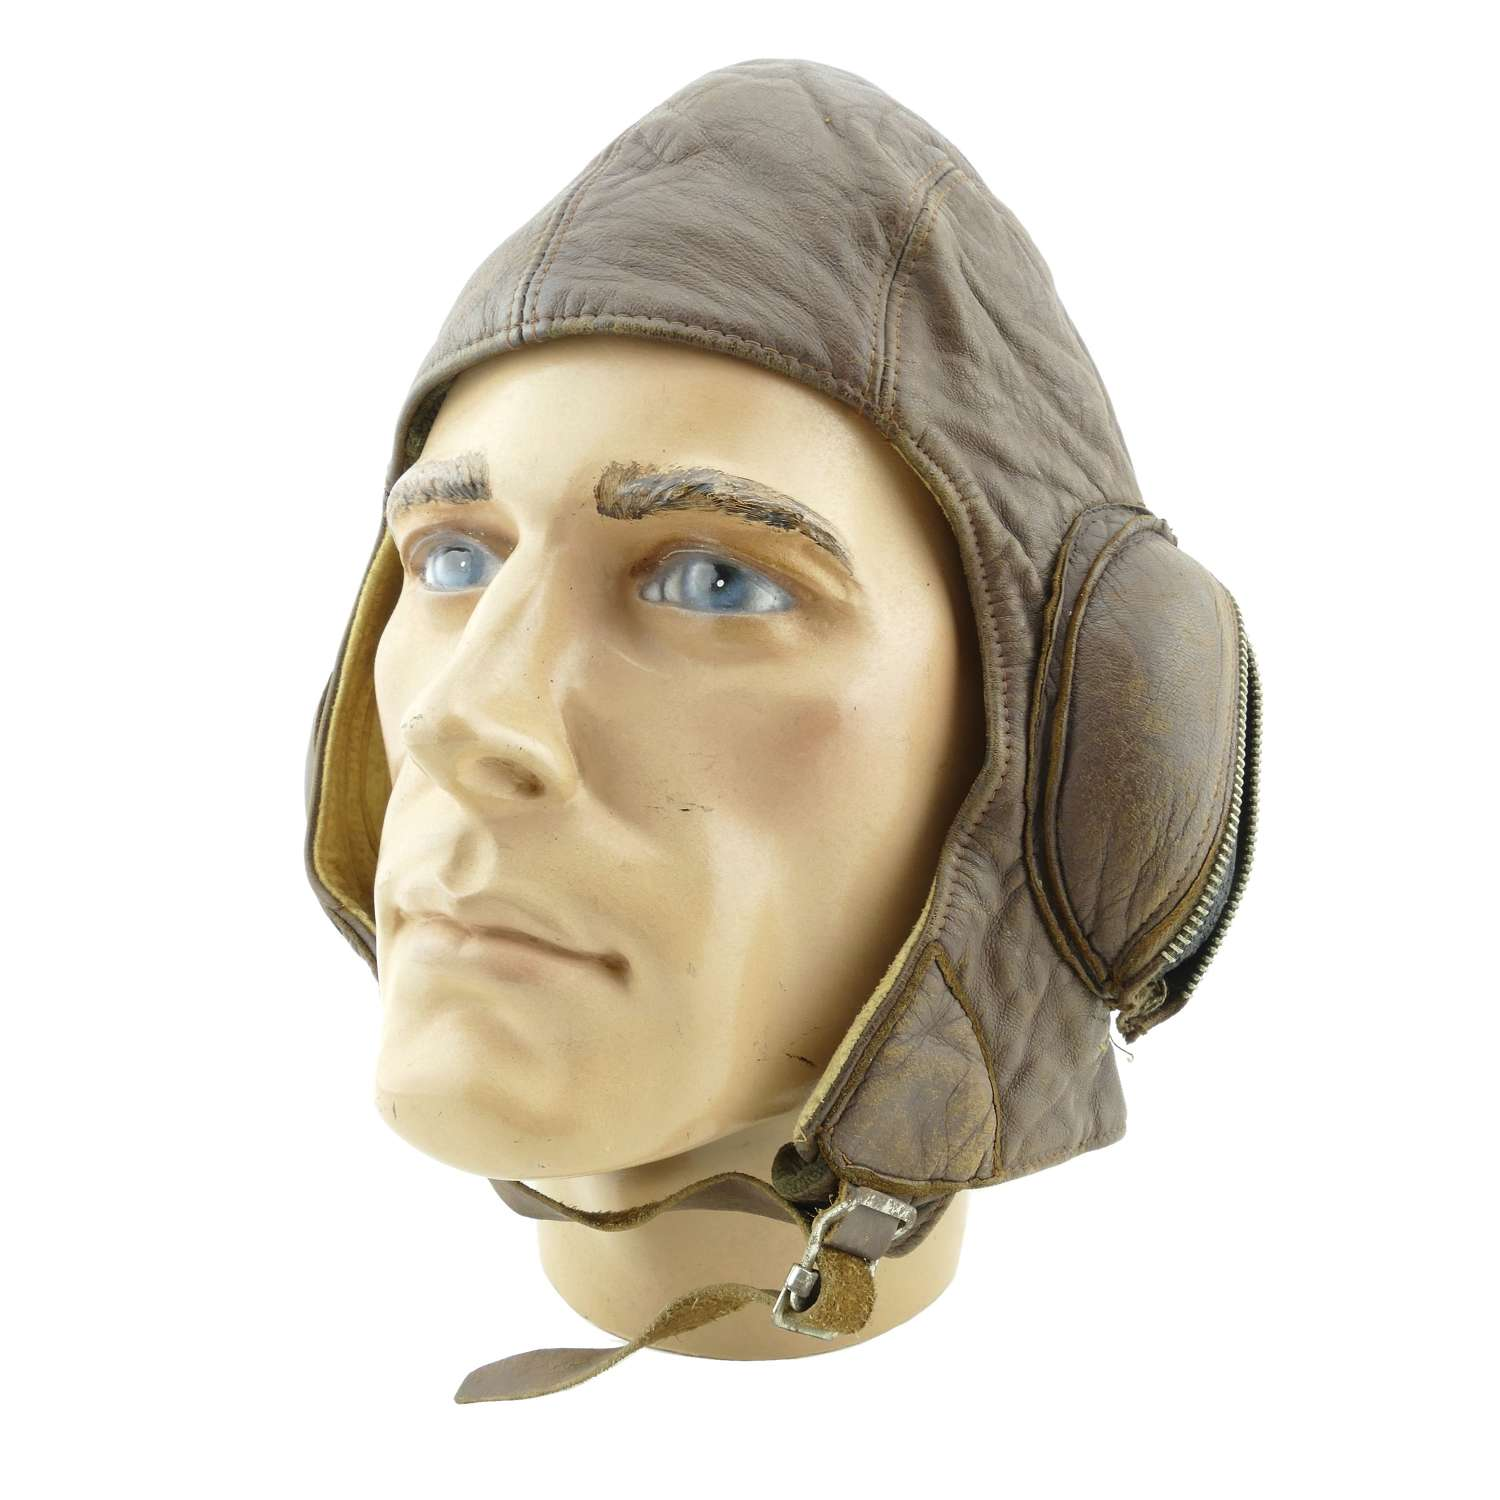 RCAF B-type flying helmet